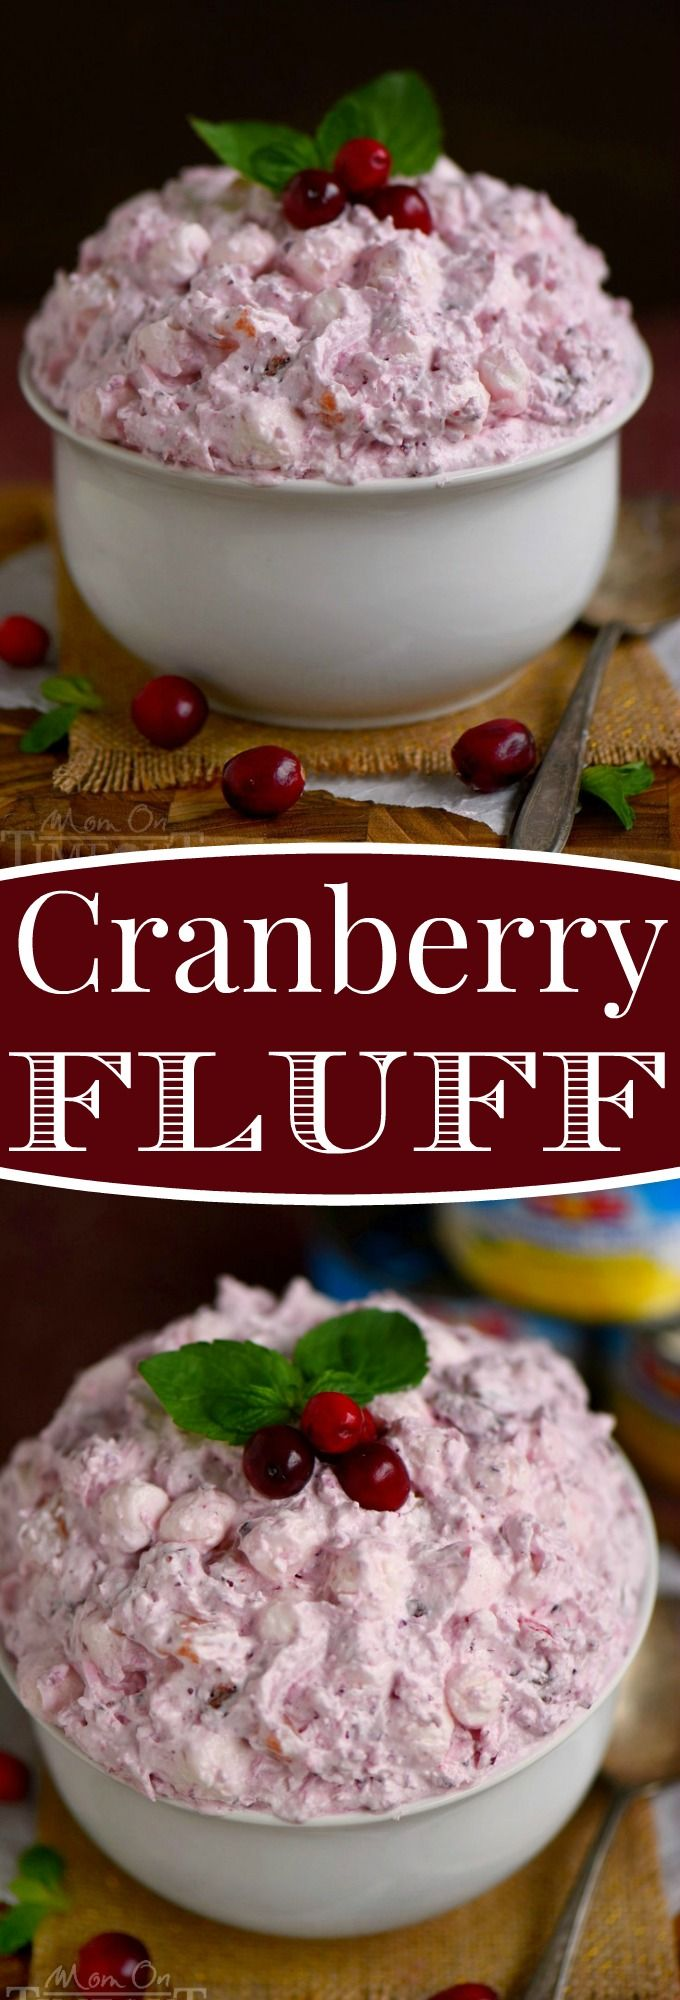 What your holiday table is missing! This Easy Cranberry Fluff is an amazing dessert salad made with cranberries, pineapples, coconut and marshmallows. No one can resist this beautiful and scrumptious dessert!